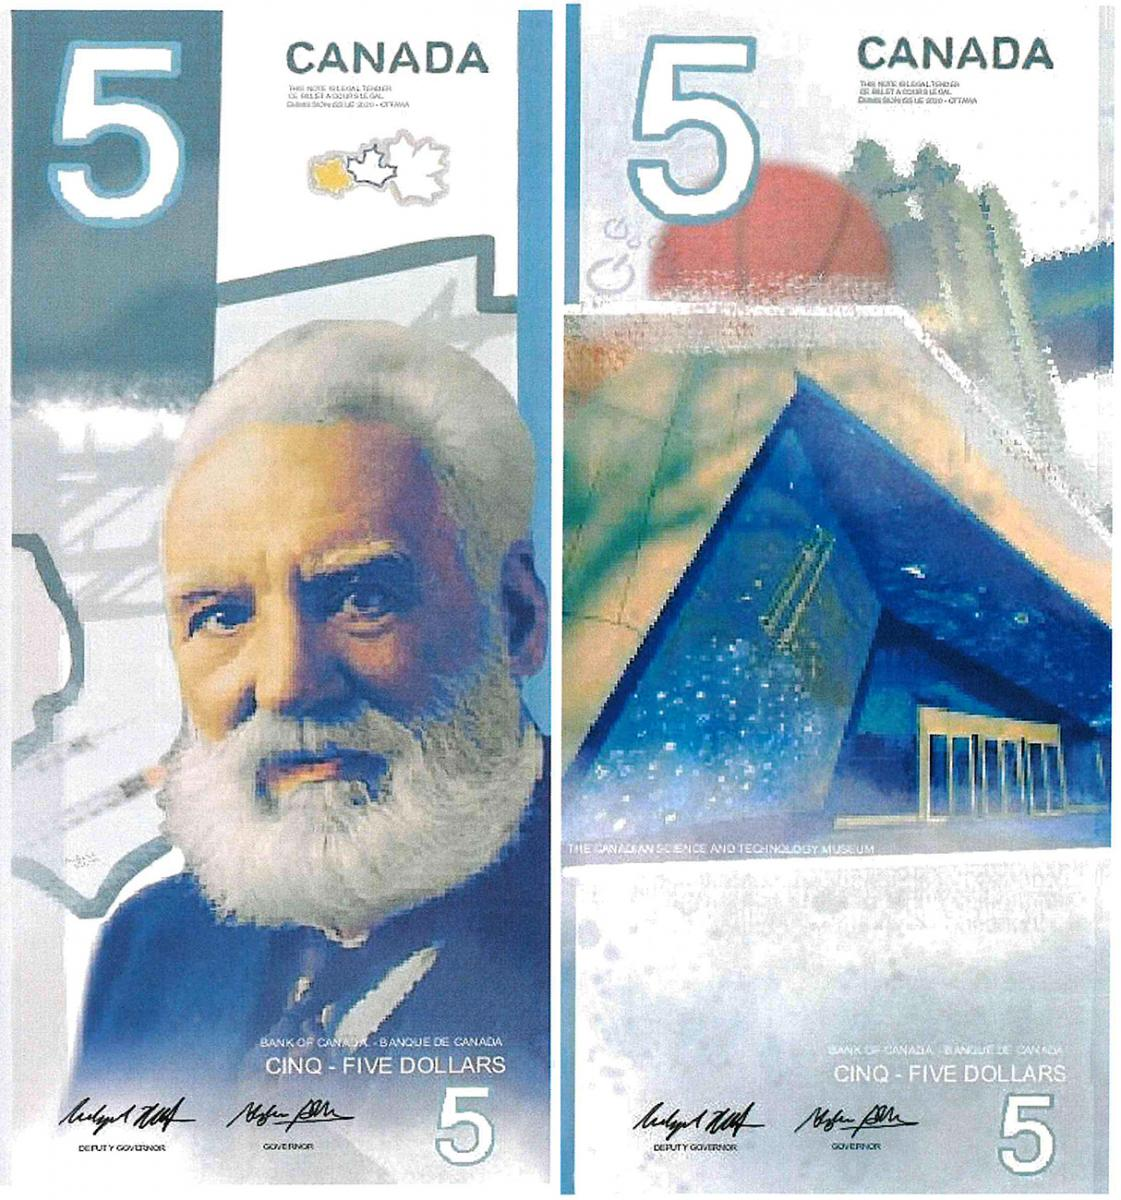 illustration, 5 dollar bill model featuring a museum entrance and Alexander Graham Bell